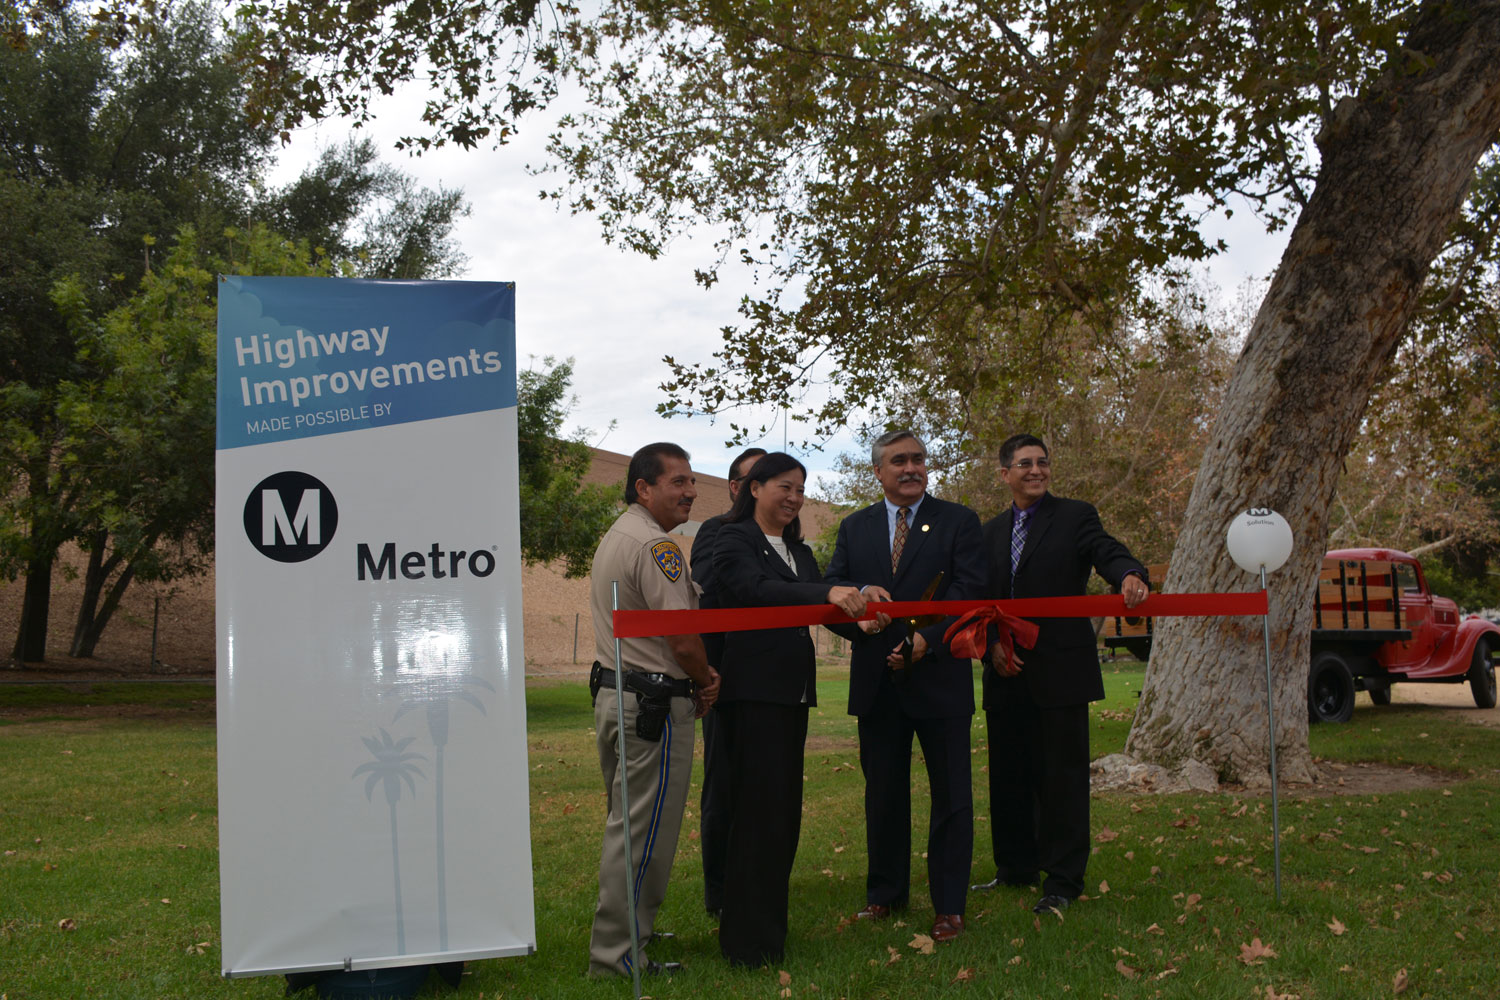 Transportation Officials Celebrate Opening of New Sound Wall Projects in the San Fernando Valley